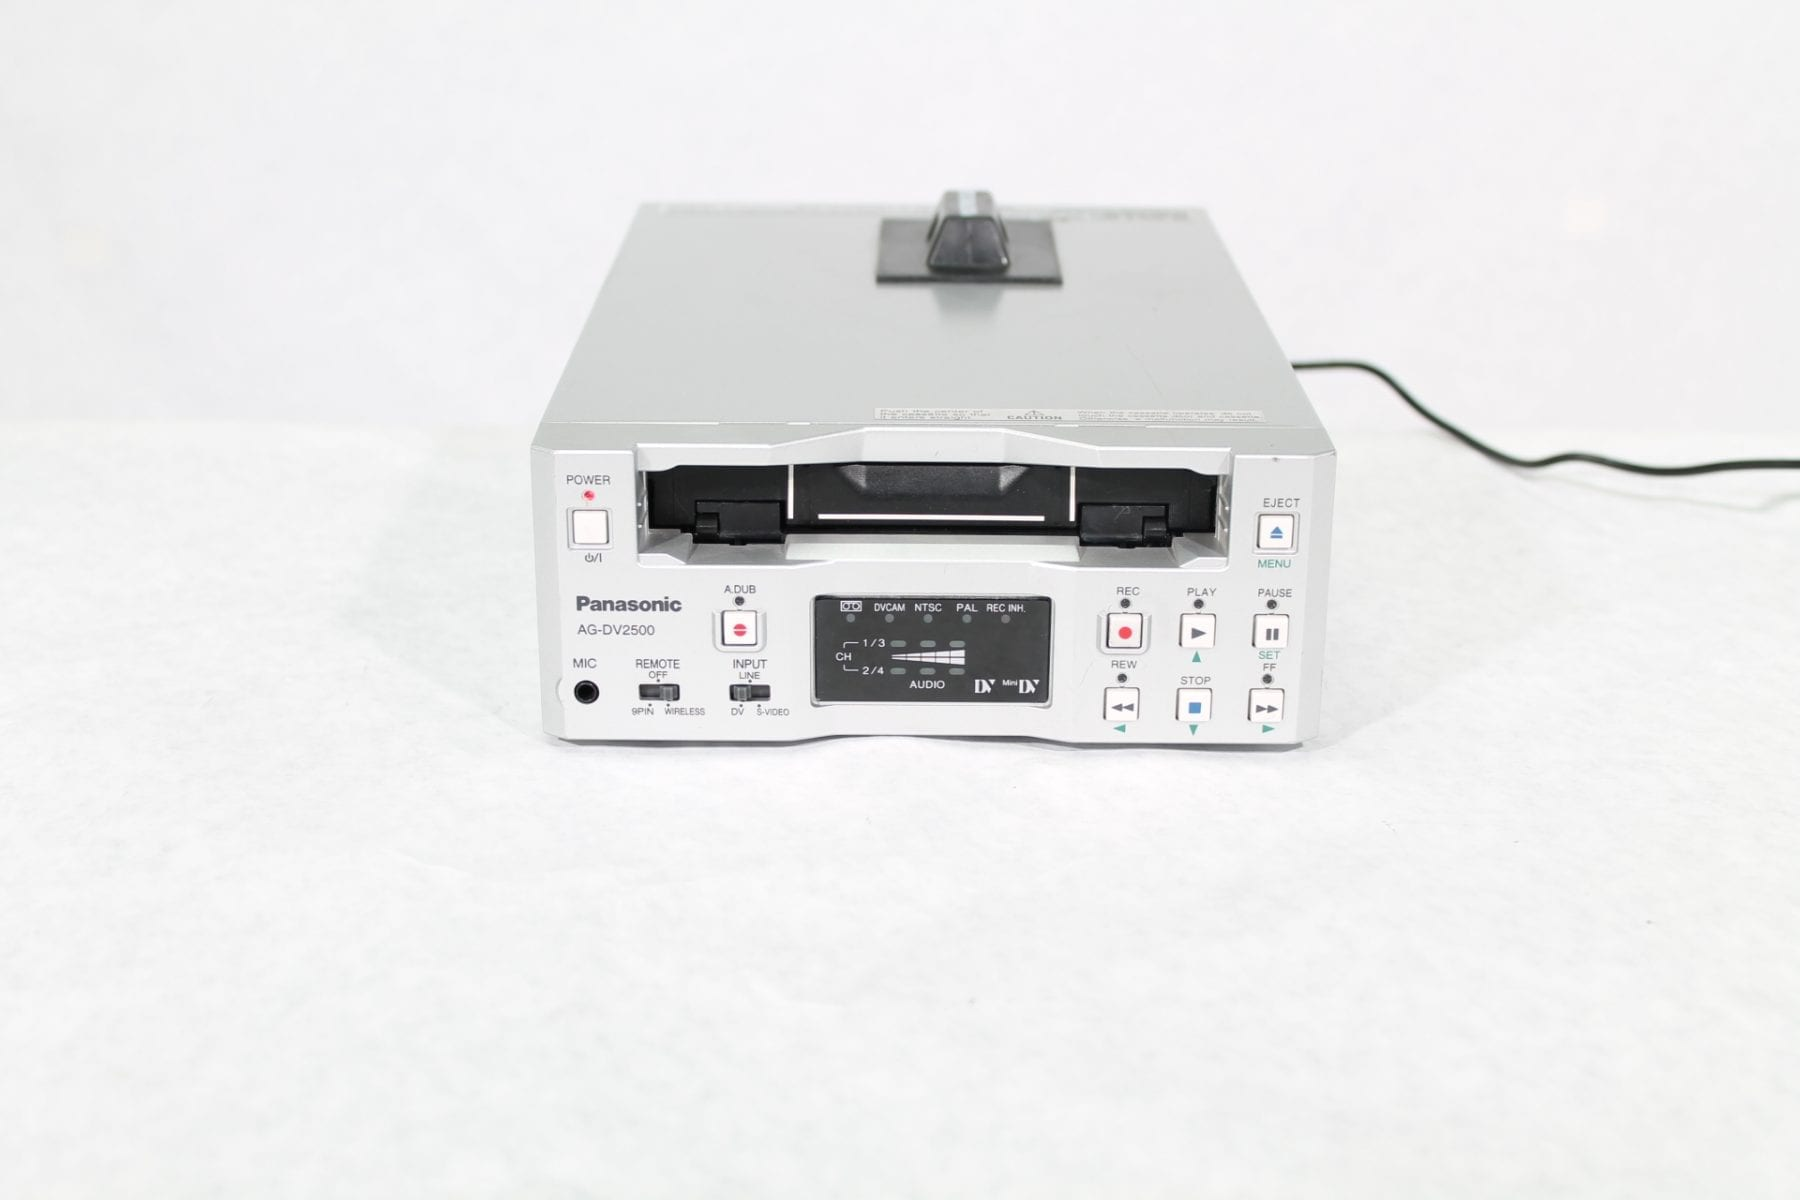 Panasonic AG-DV2500P Mini DV DVCAM VCR DECK NTSC/PAL Main